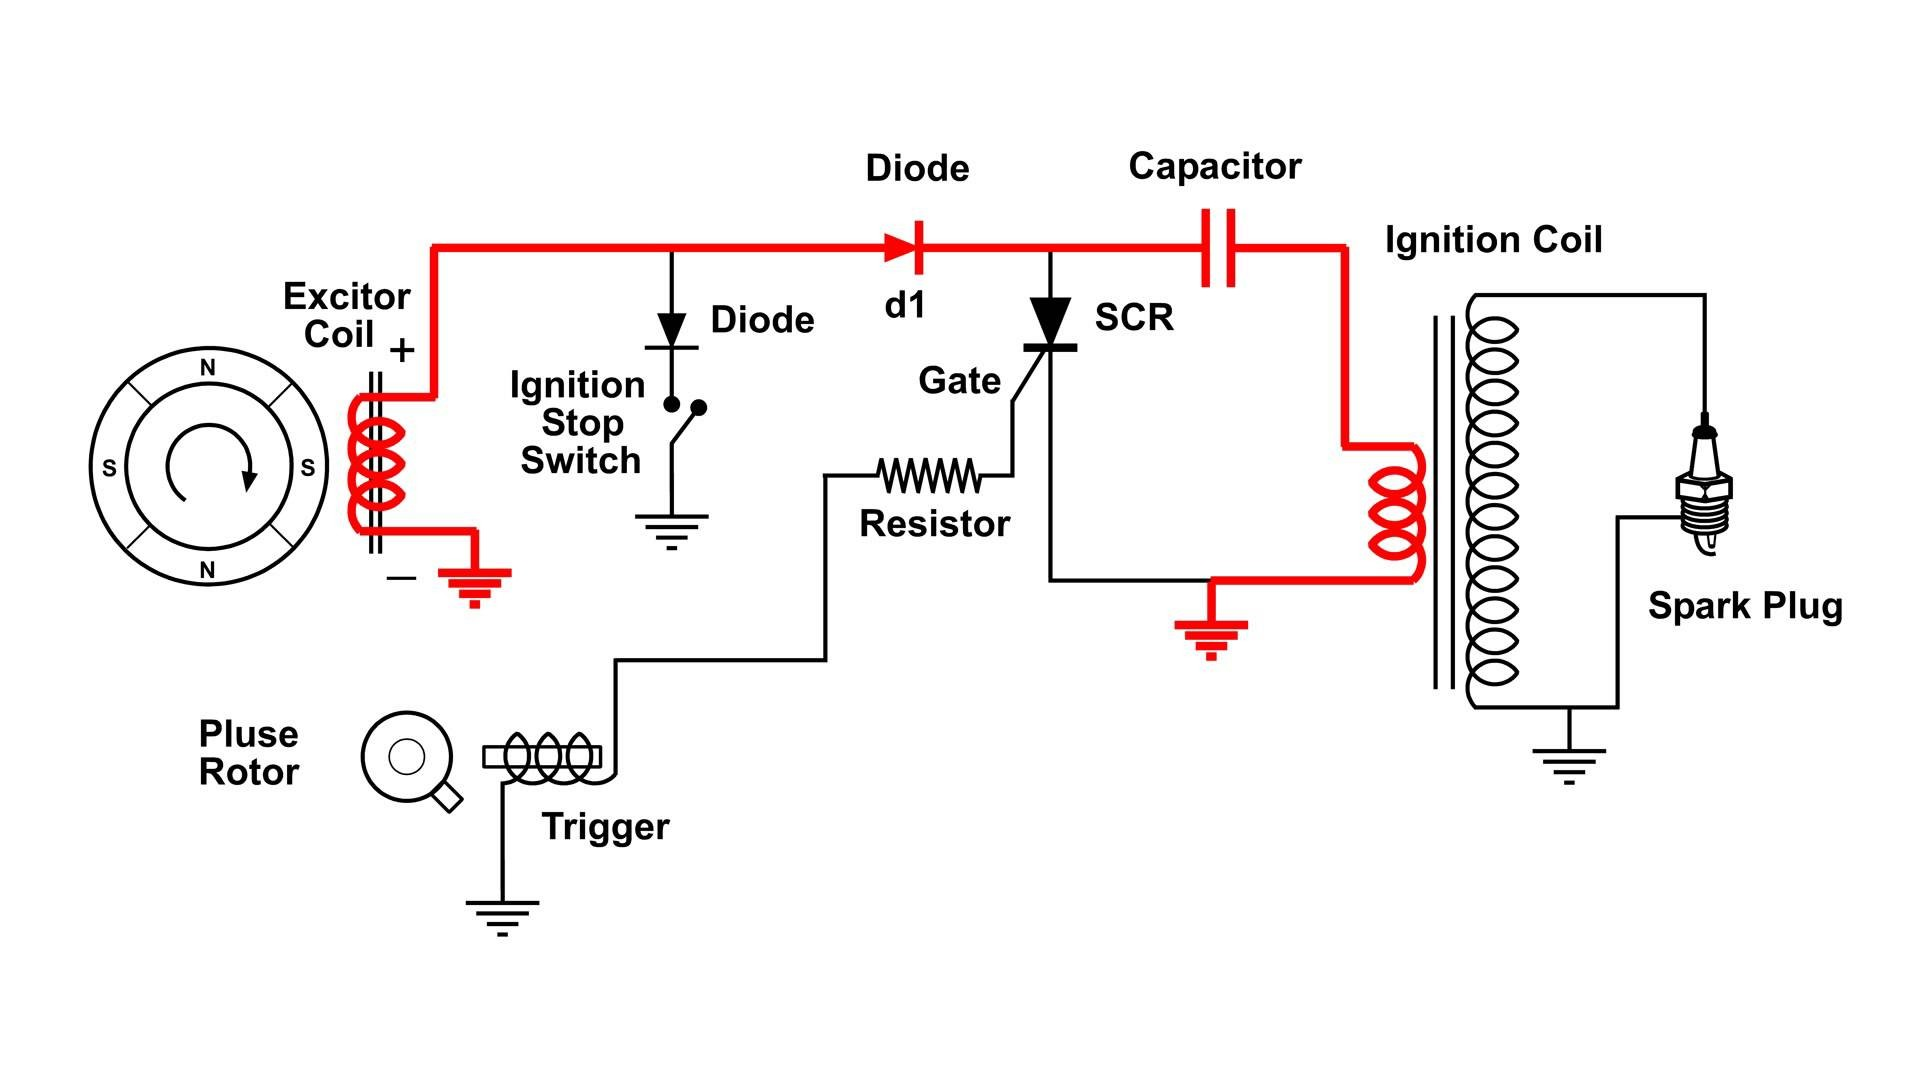 Diagram Of Coil Ignition System Cdi Capacitor Discharge Ignition Circuit Demo Of Diagram Of Coil Ignition System Car Ignition System Wiring Diagram